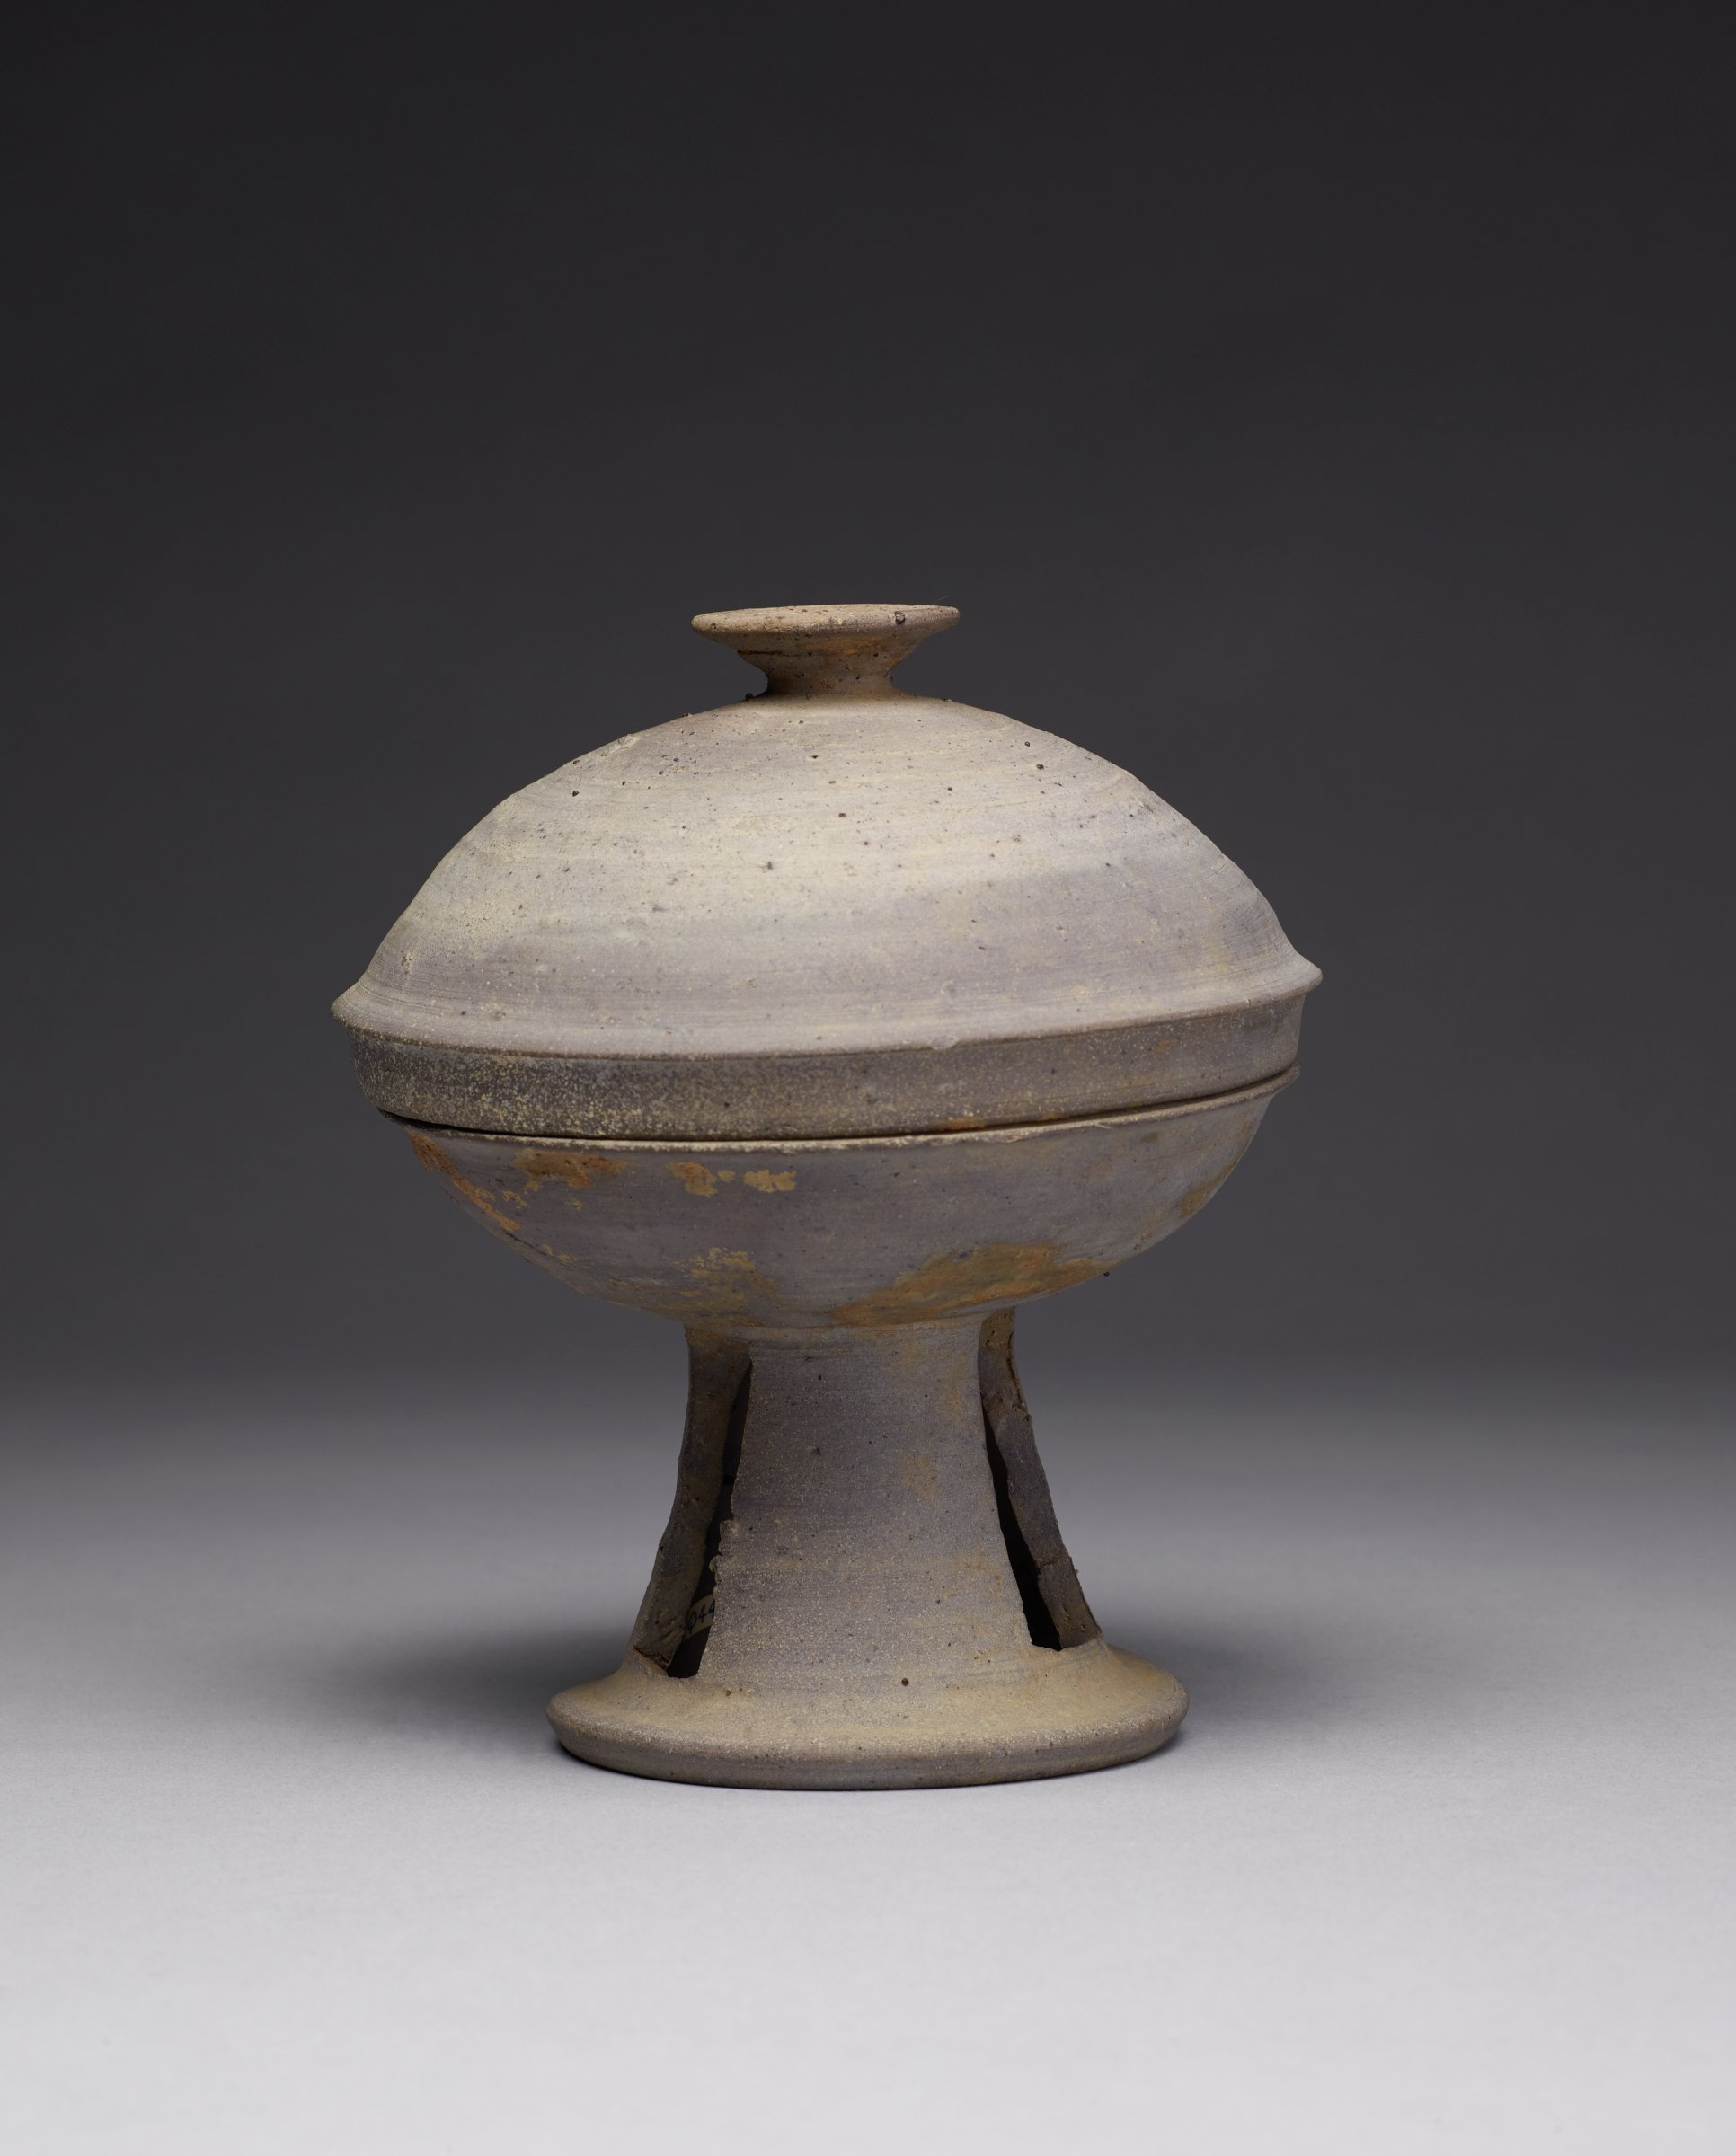 """Covered Pierced Pedestal GobletGood marriage. Thinly pottedBowl: 5 78/ Dia; H: 4""""Cover 5"""" DIA.; H: 2"""""""